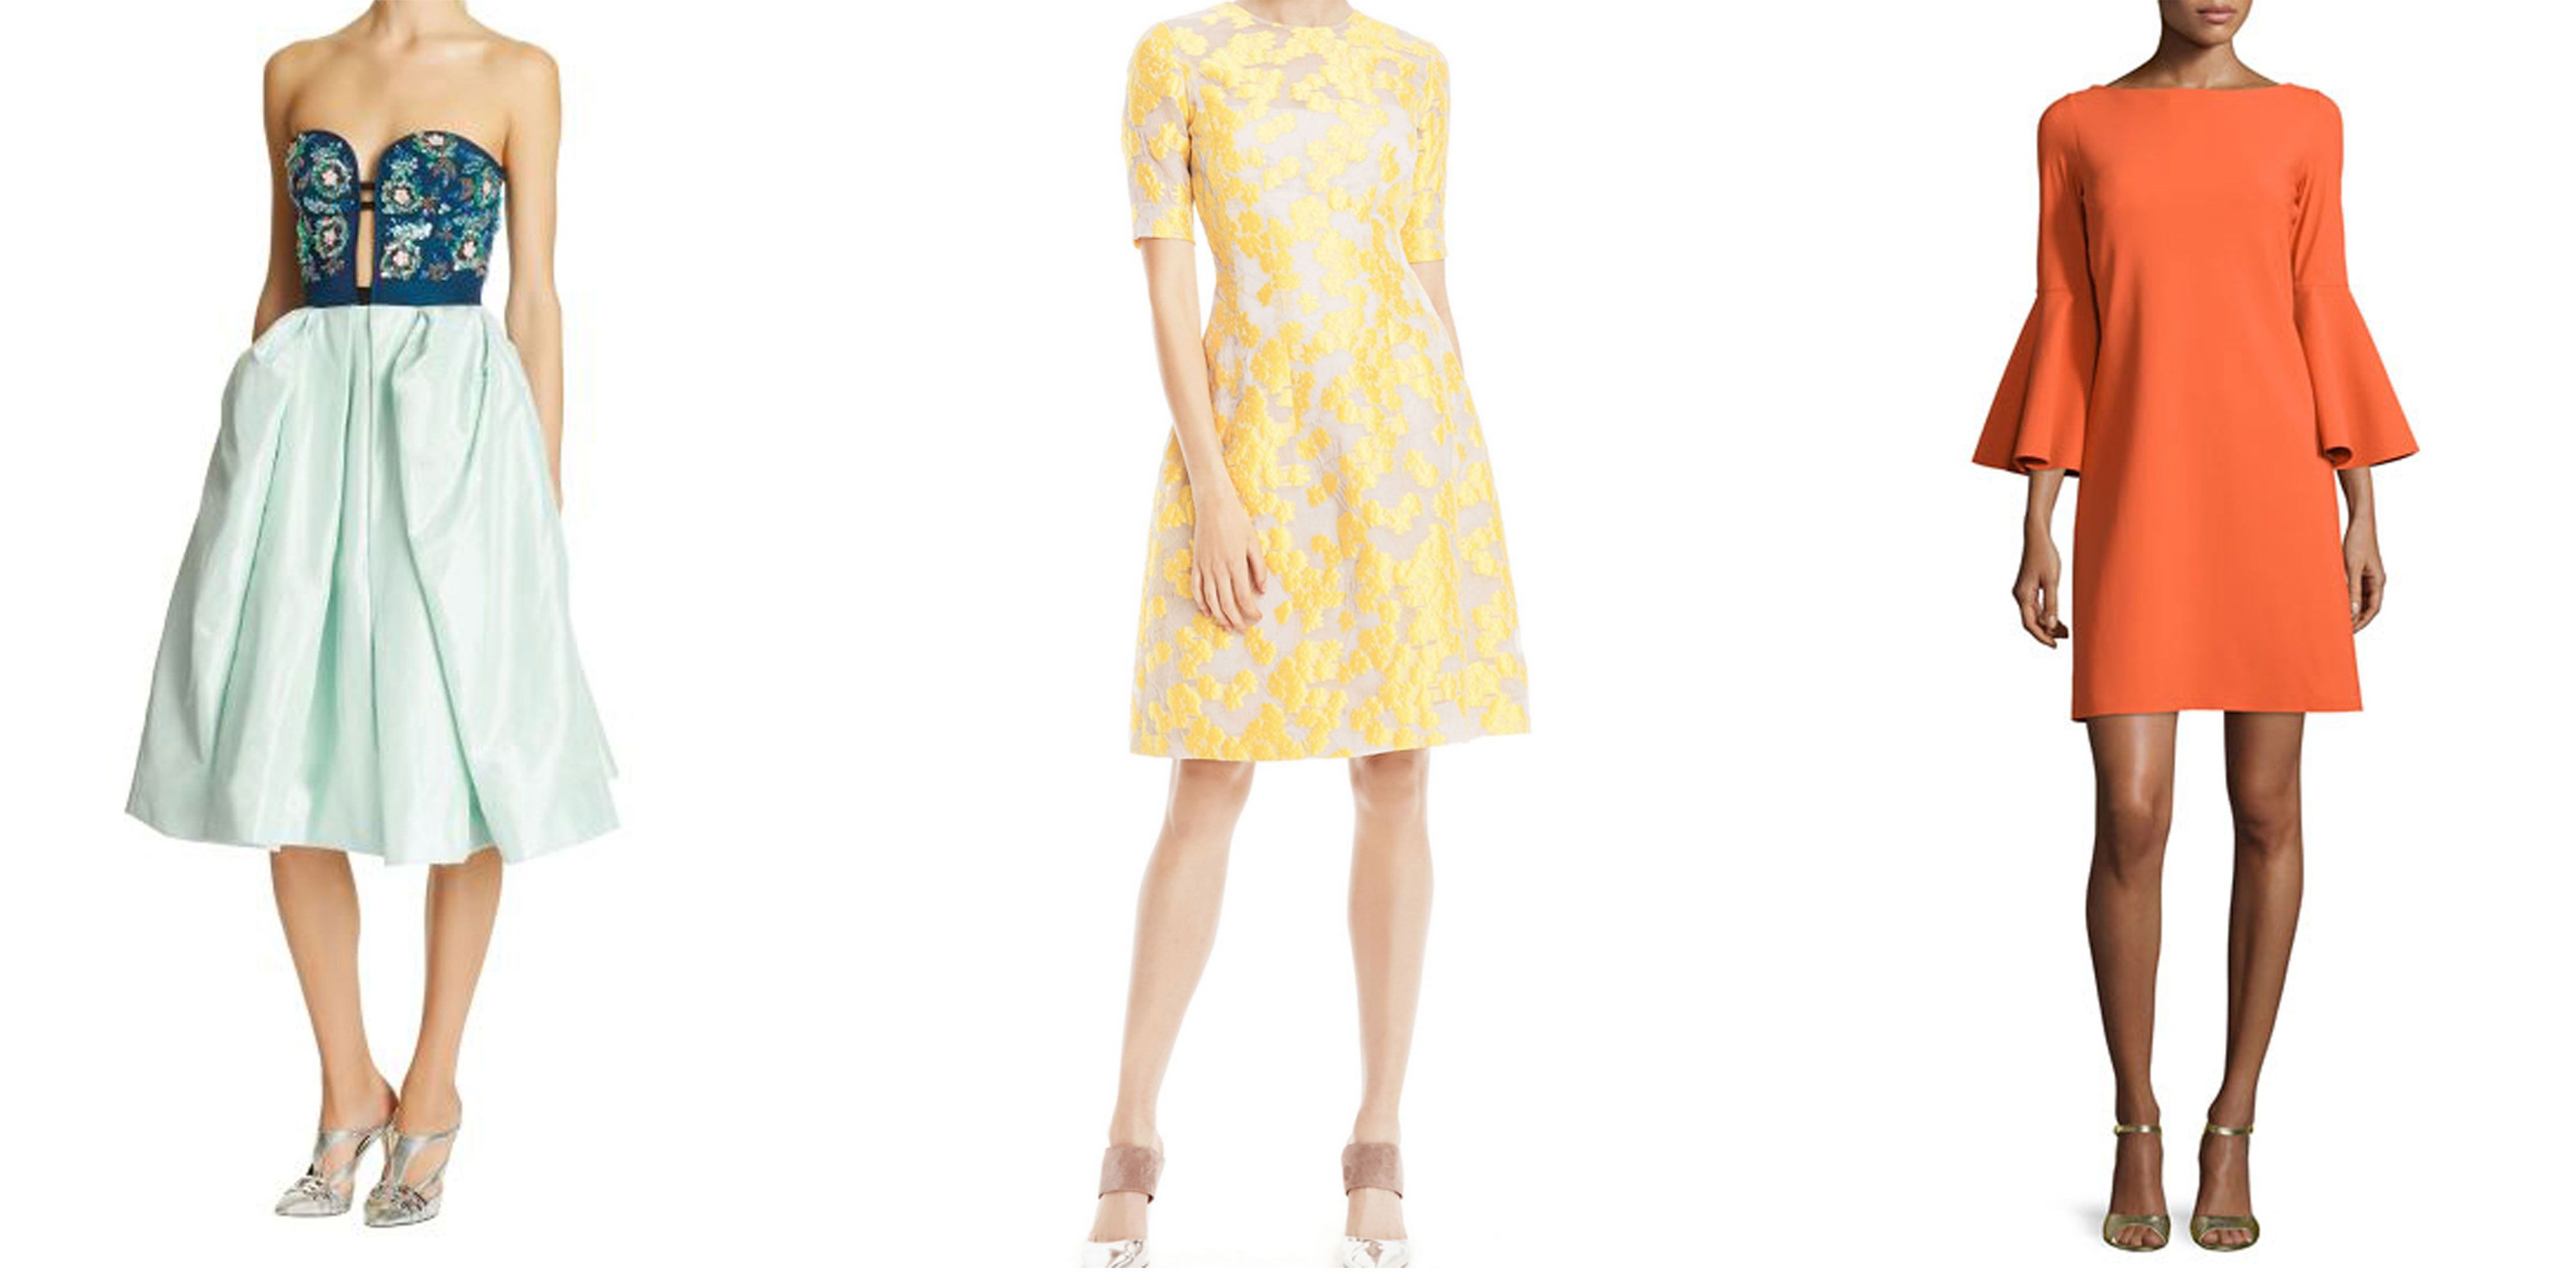 25 Stylish Summer Wedding Guest Dresses - What to Wear to a Summer ...